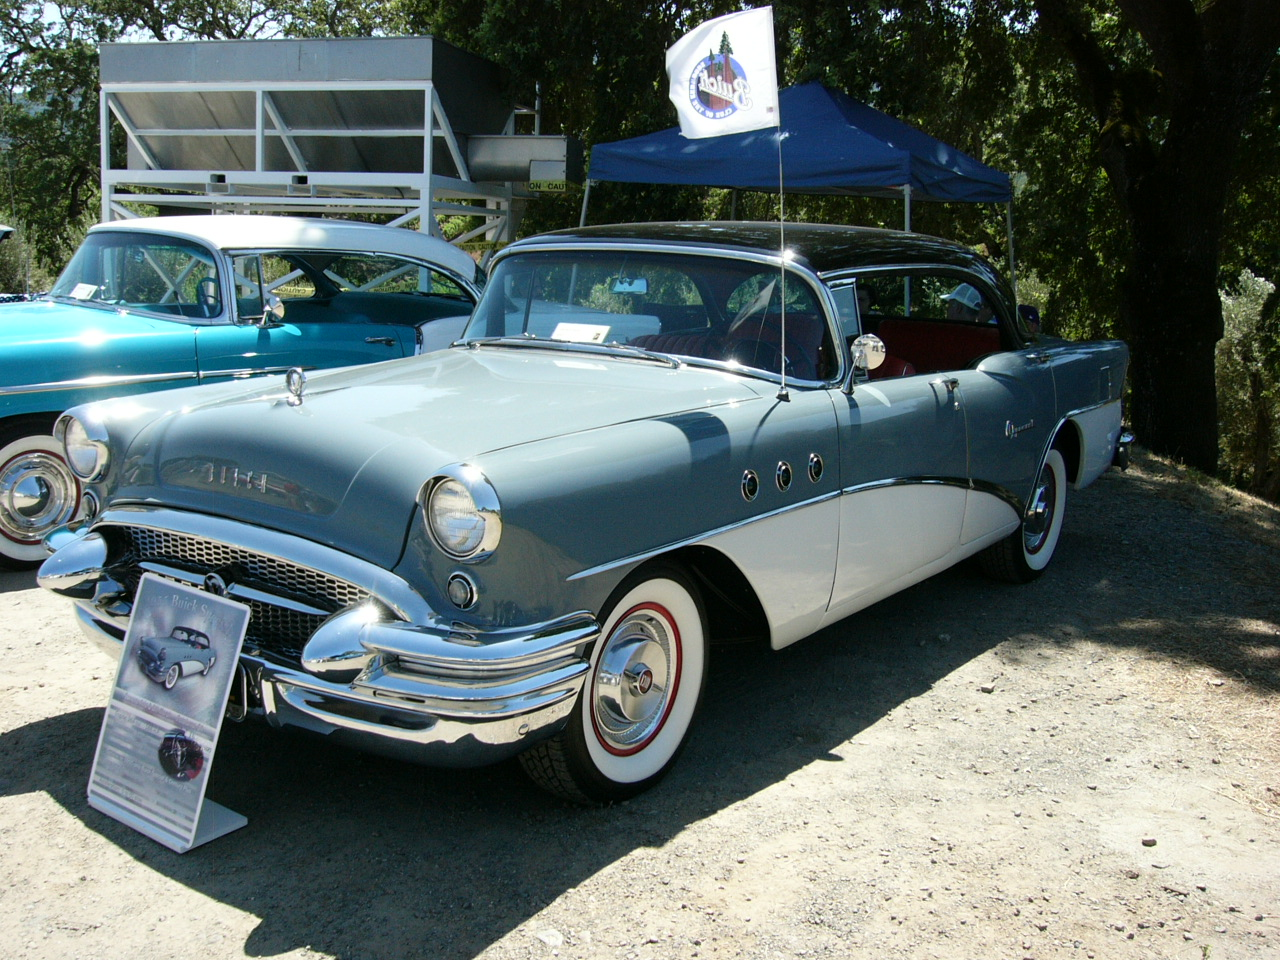 1955 buick special 4dr hardtop by roadtripdog on deviantart for 1955 buick special 2 door